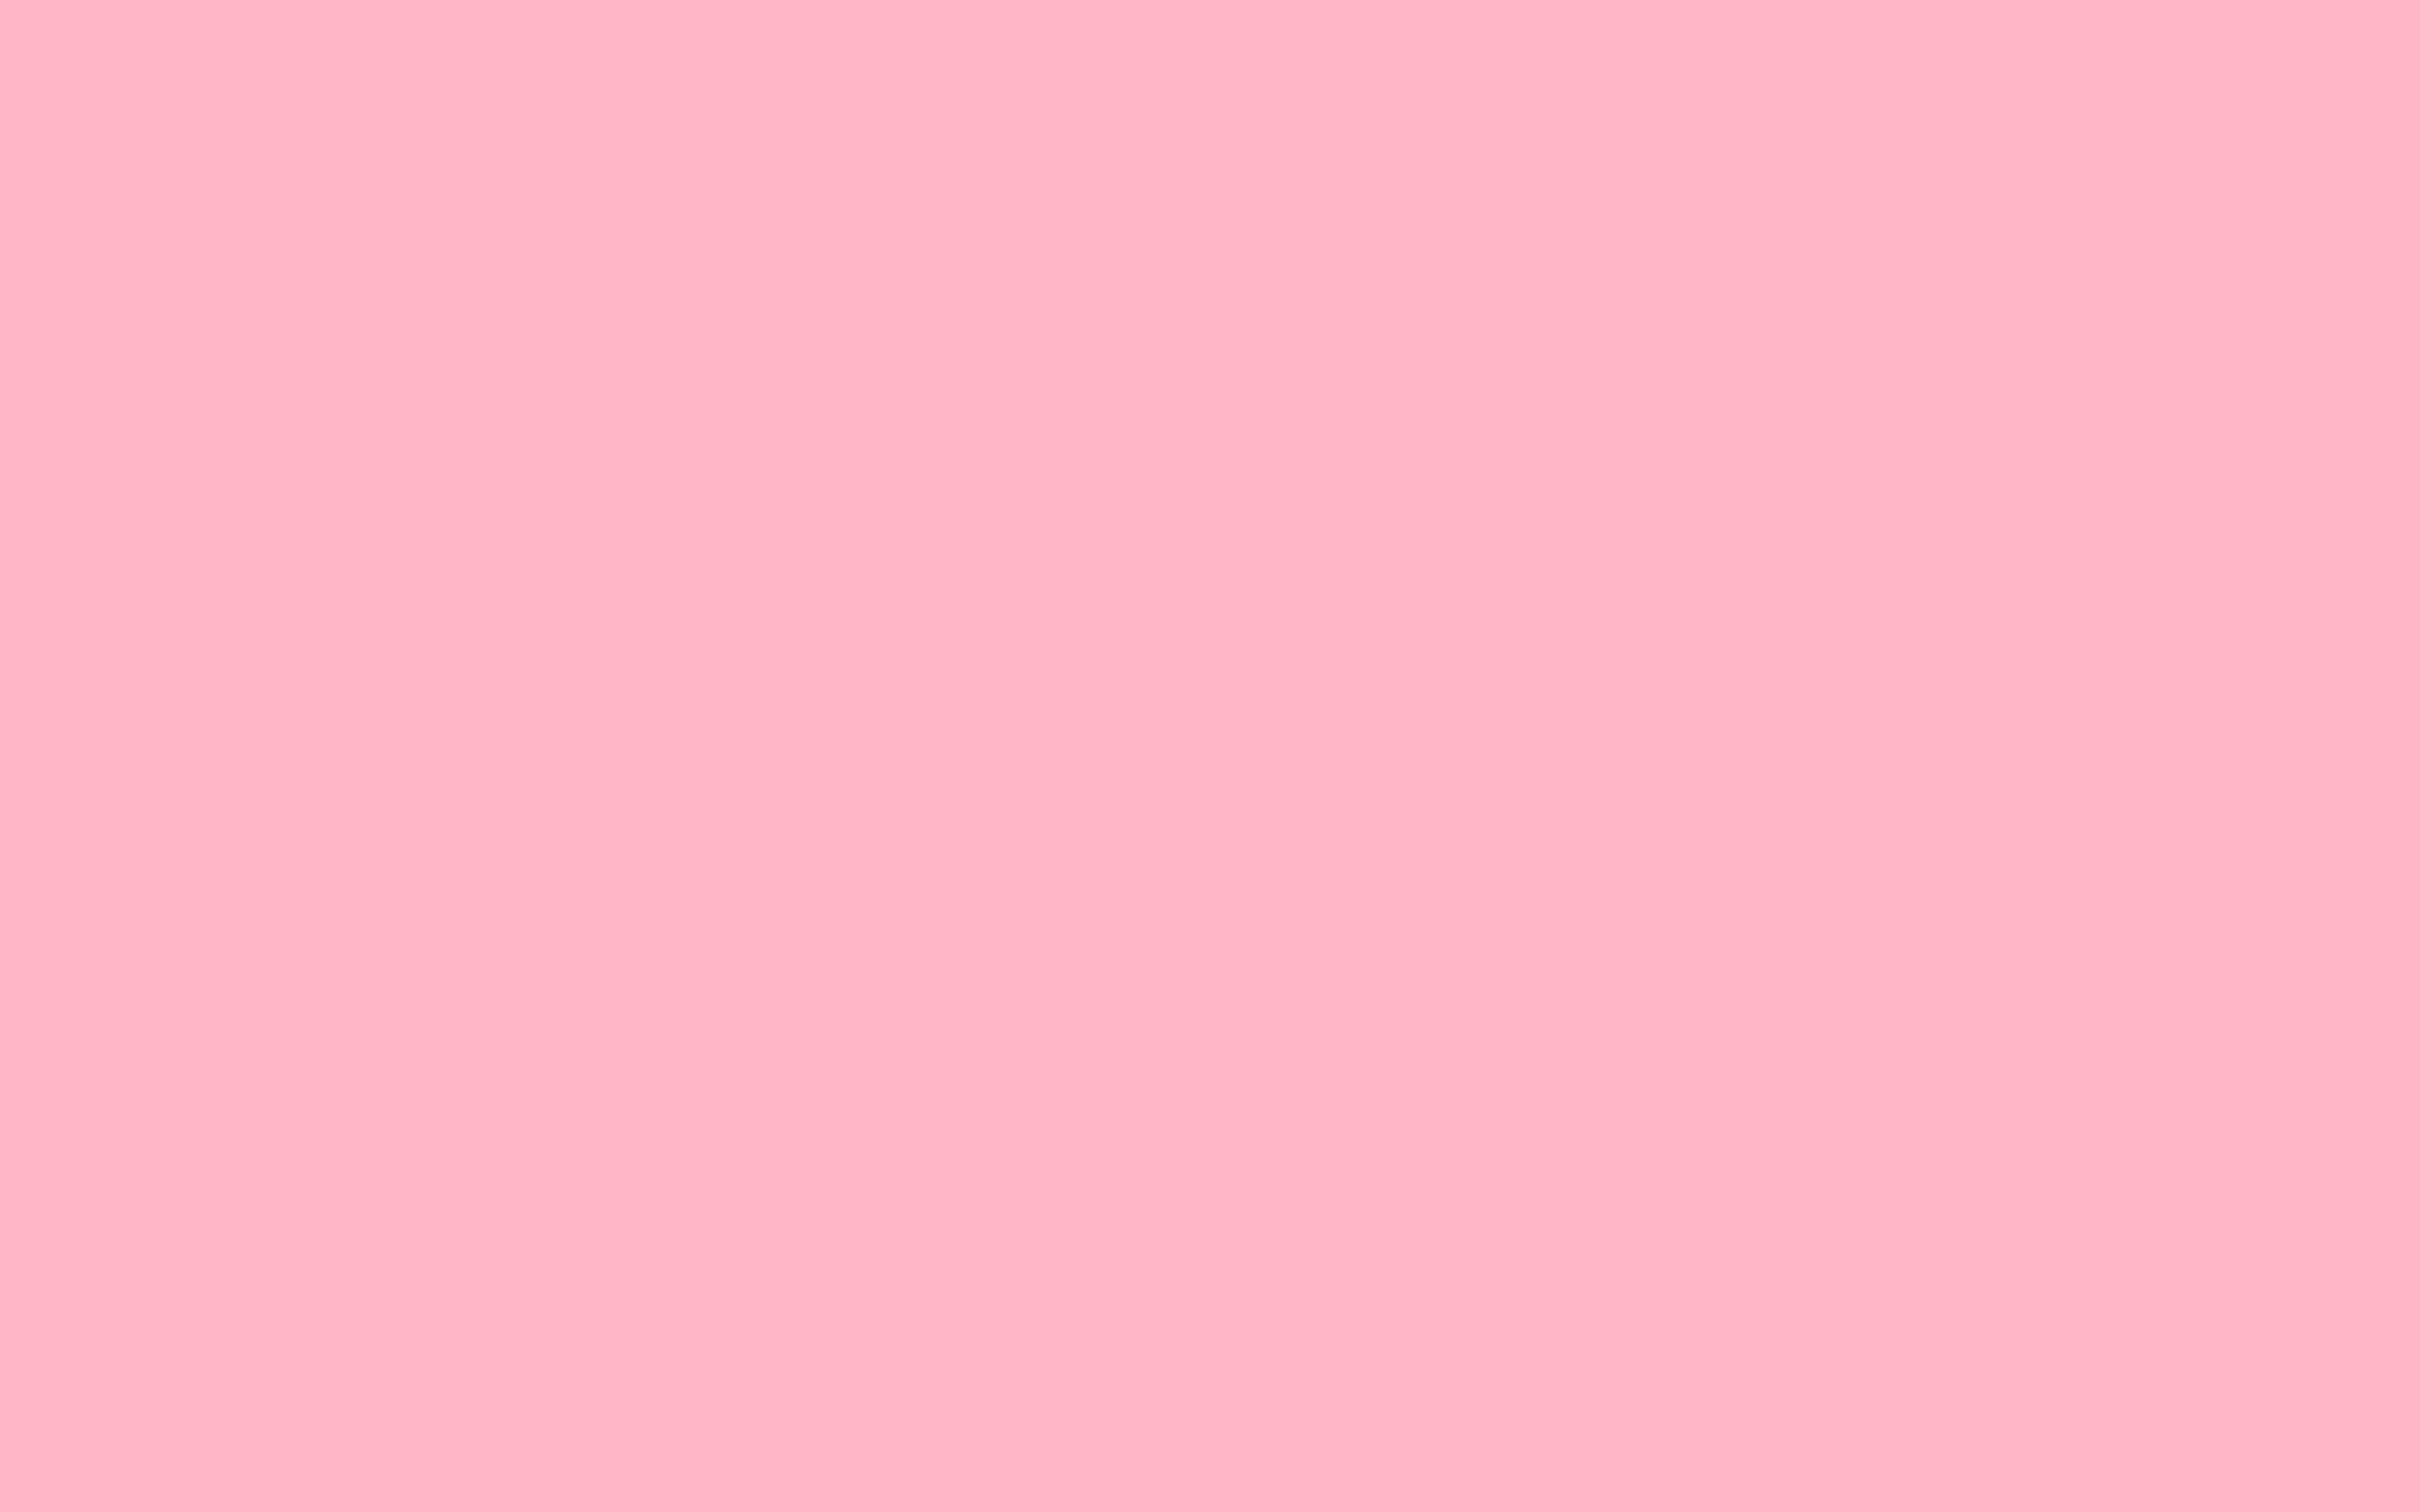 2880x1800 Cherry Blossom Pink Solid Color Background